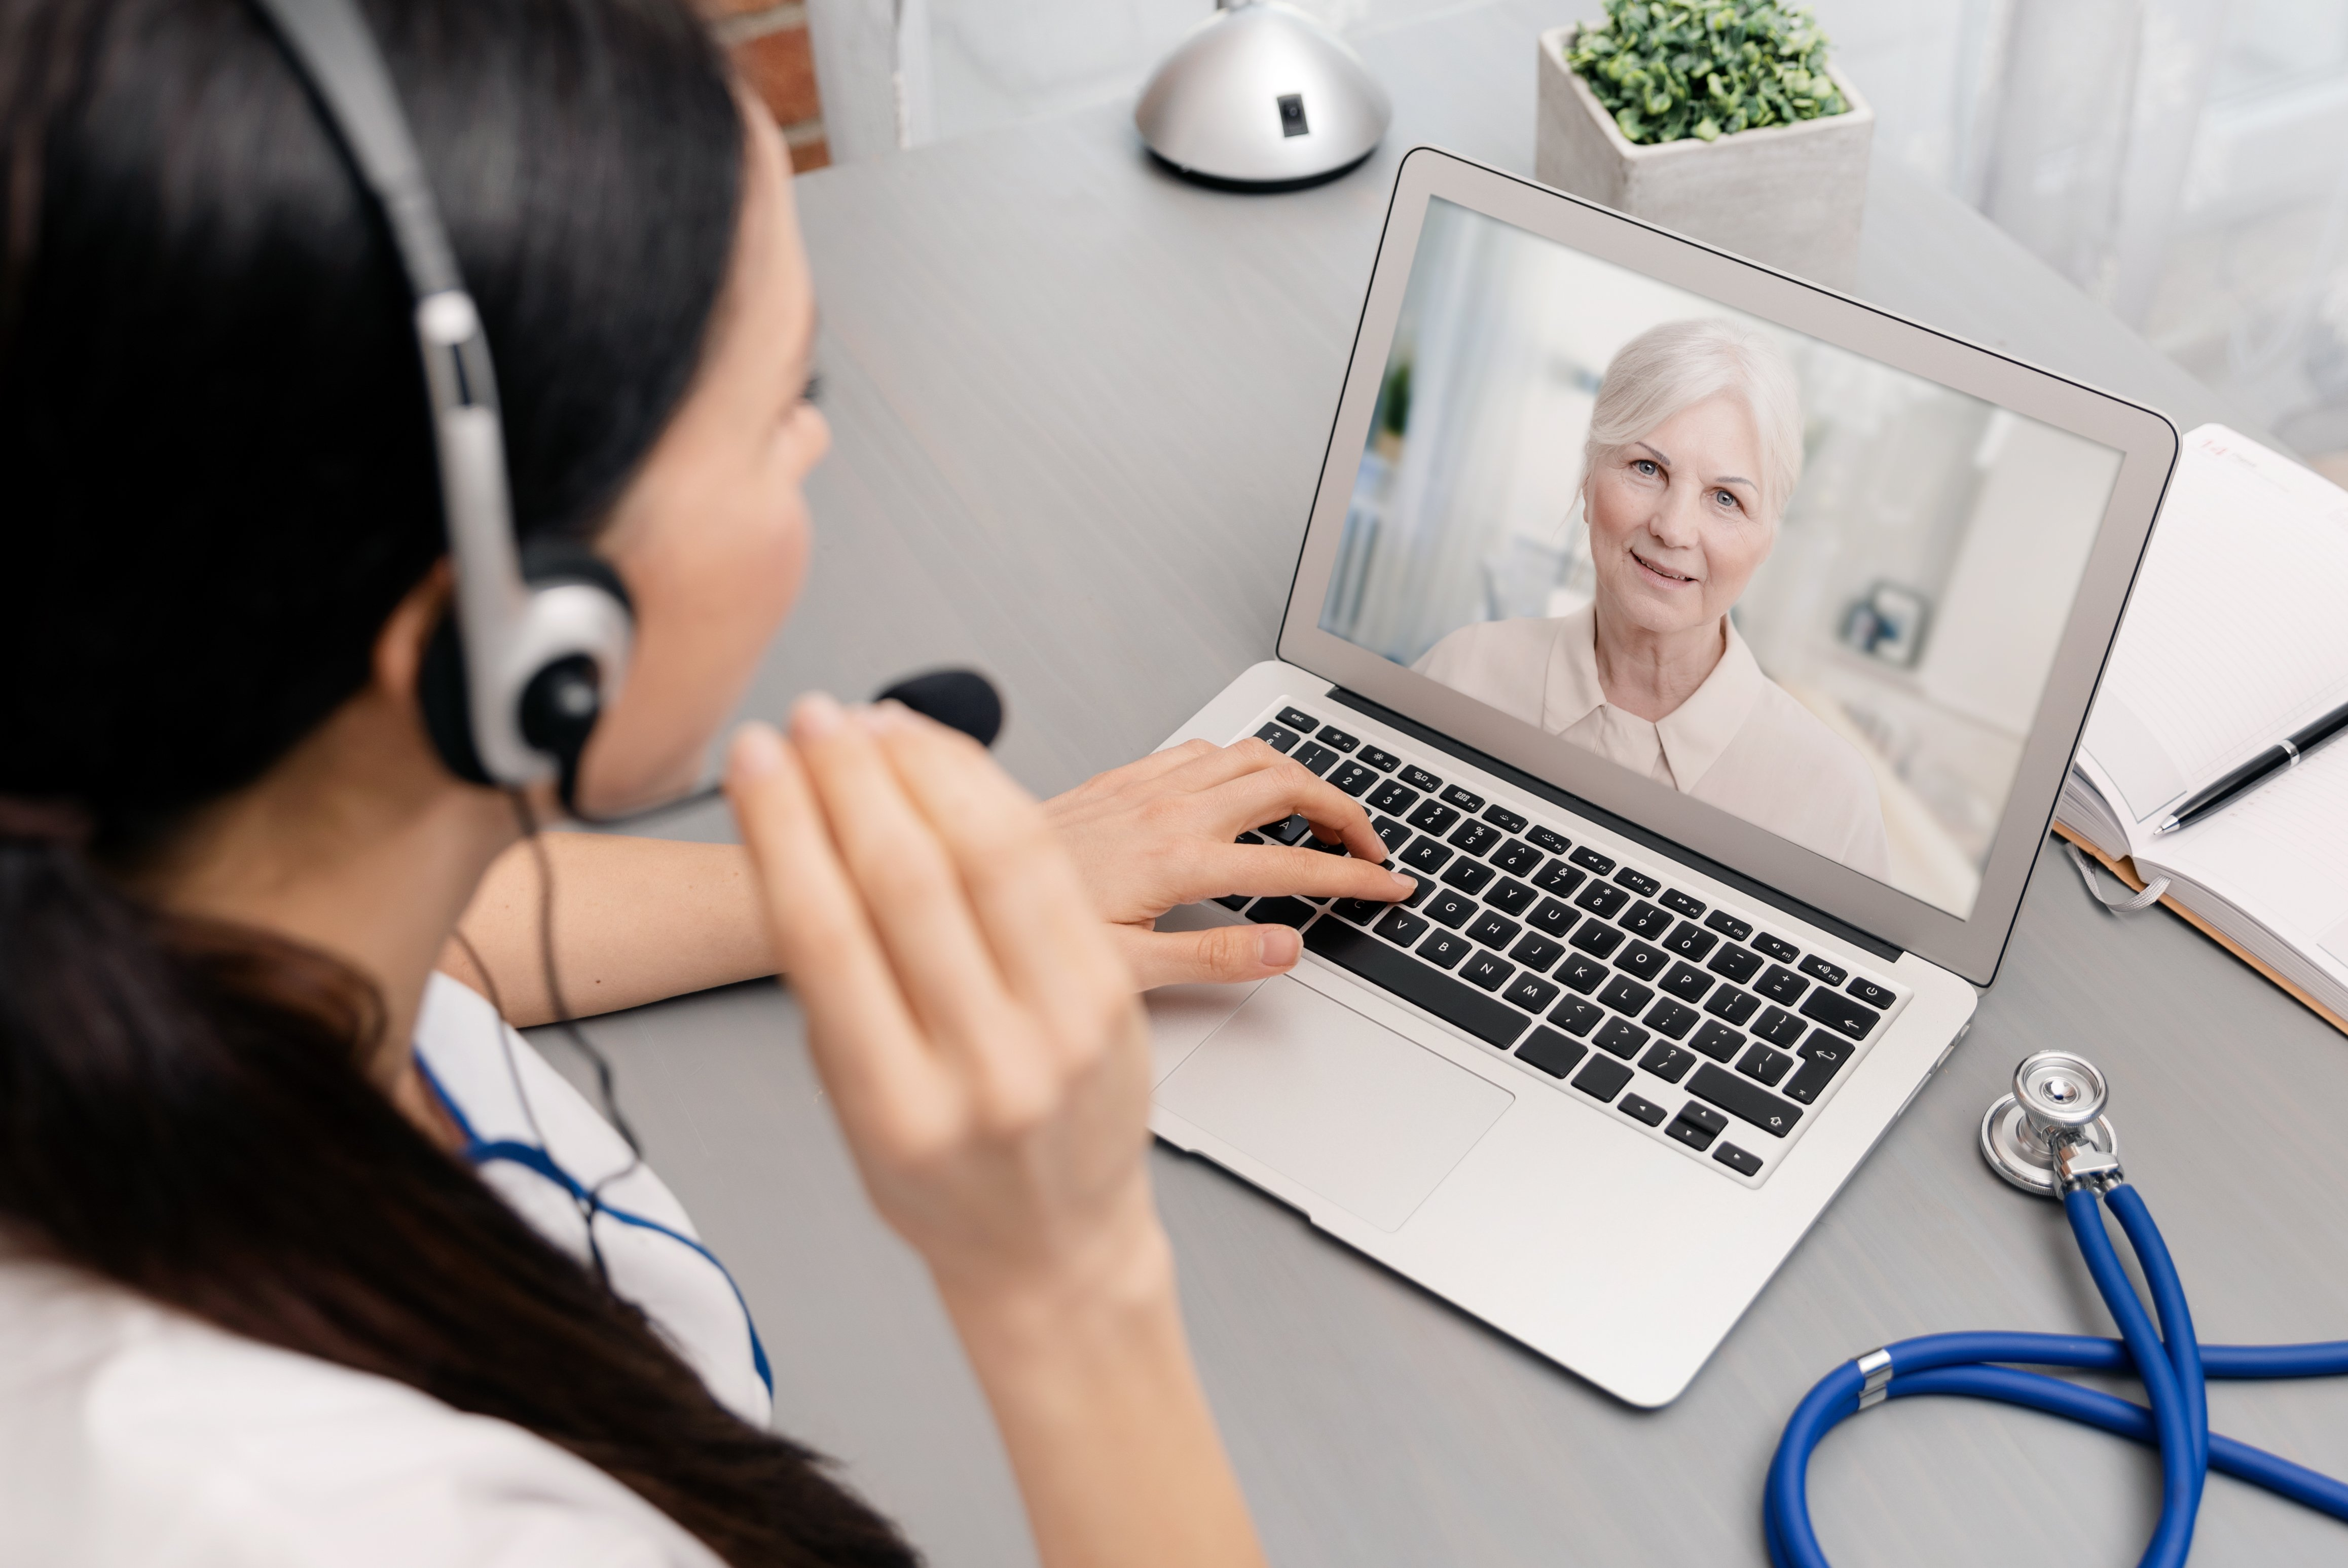 Impact of digital healthcare on patient experience